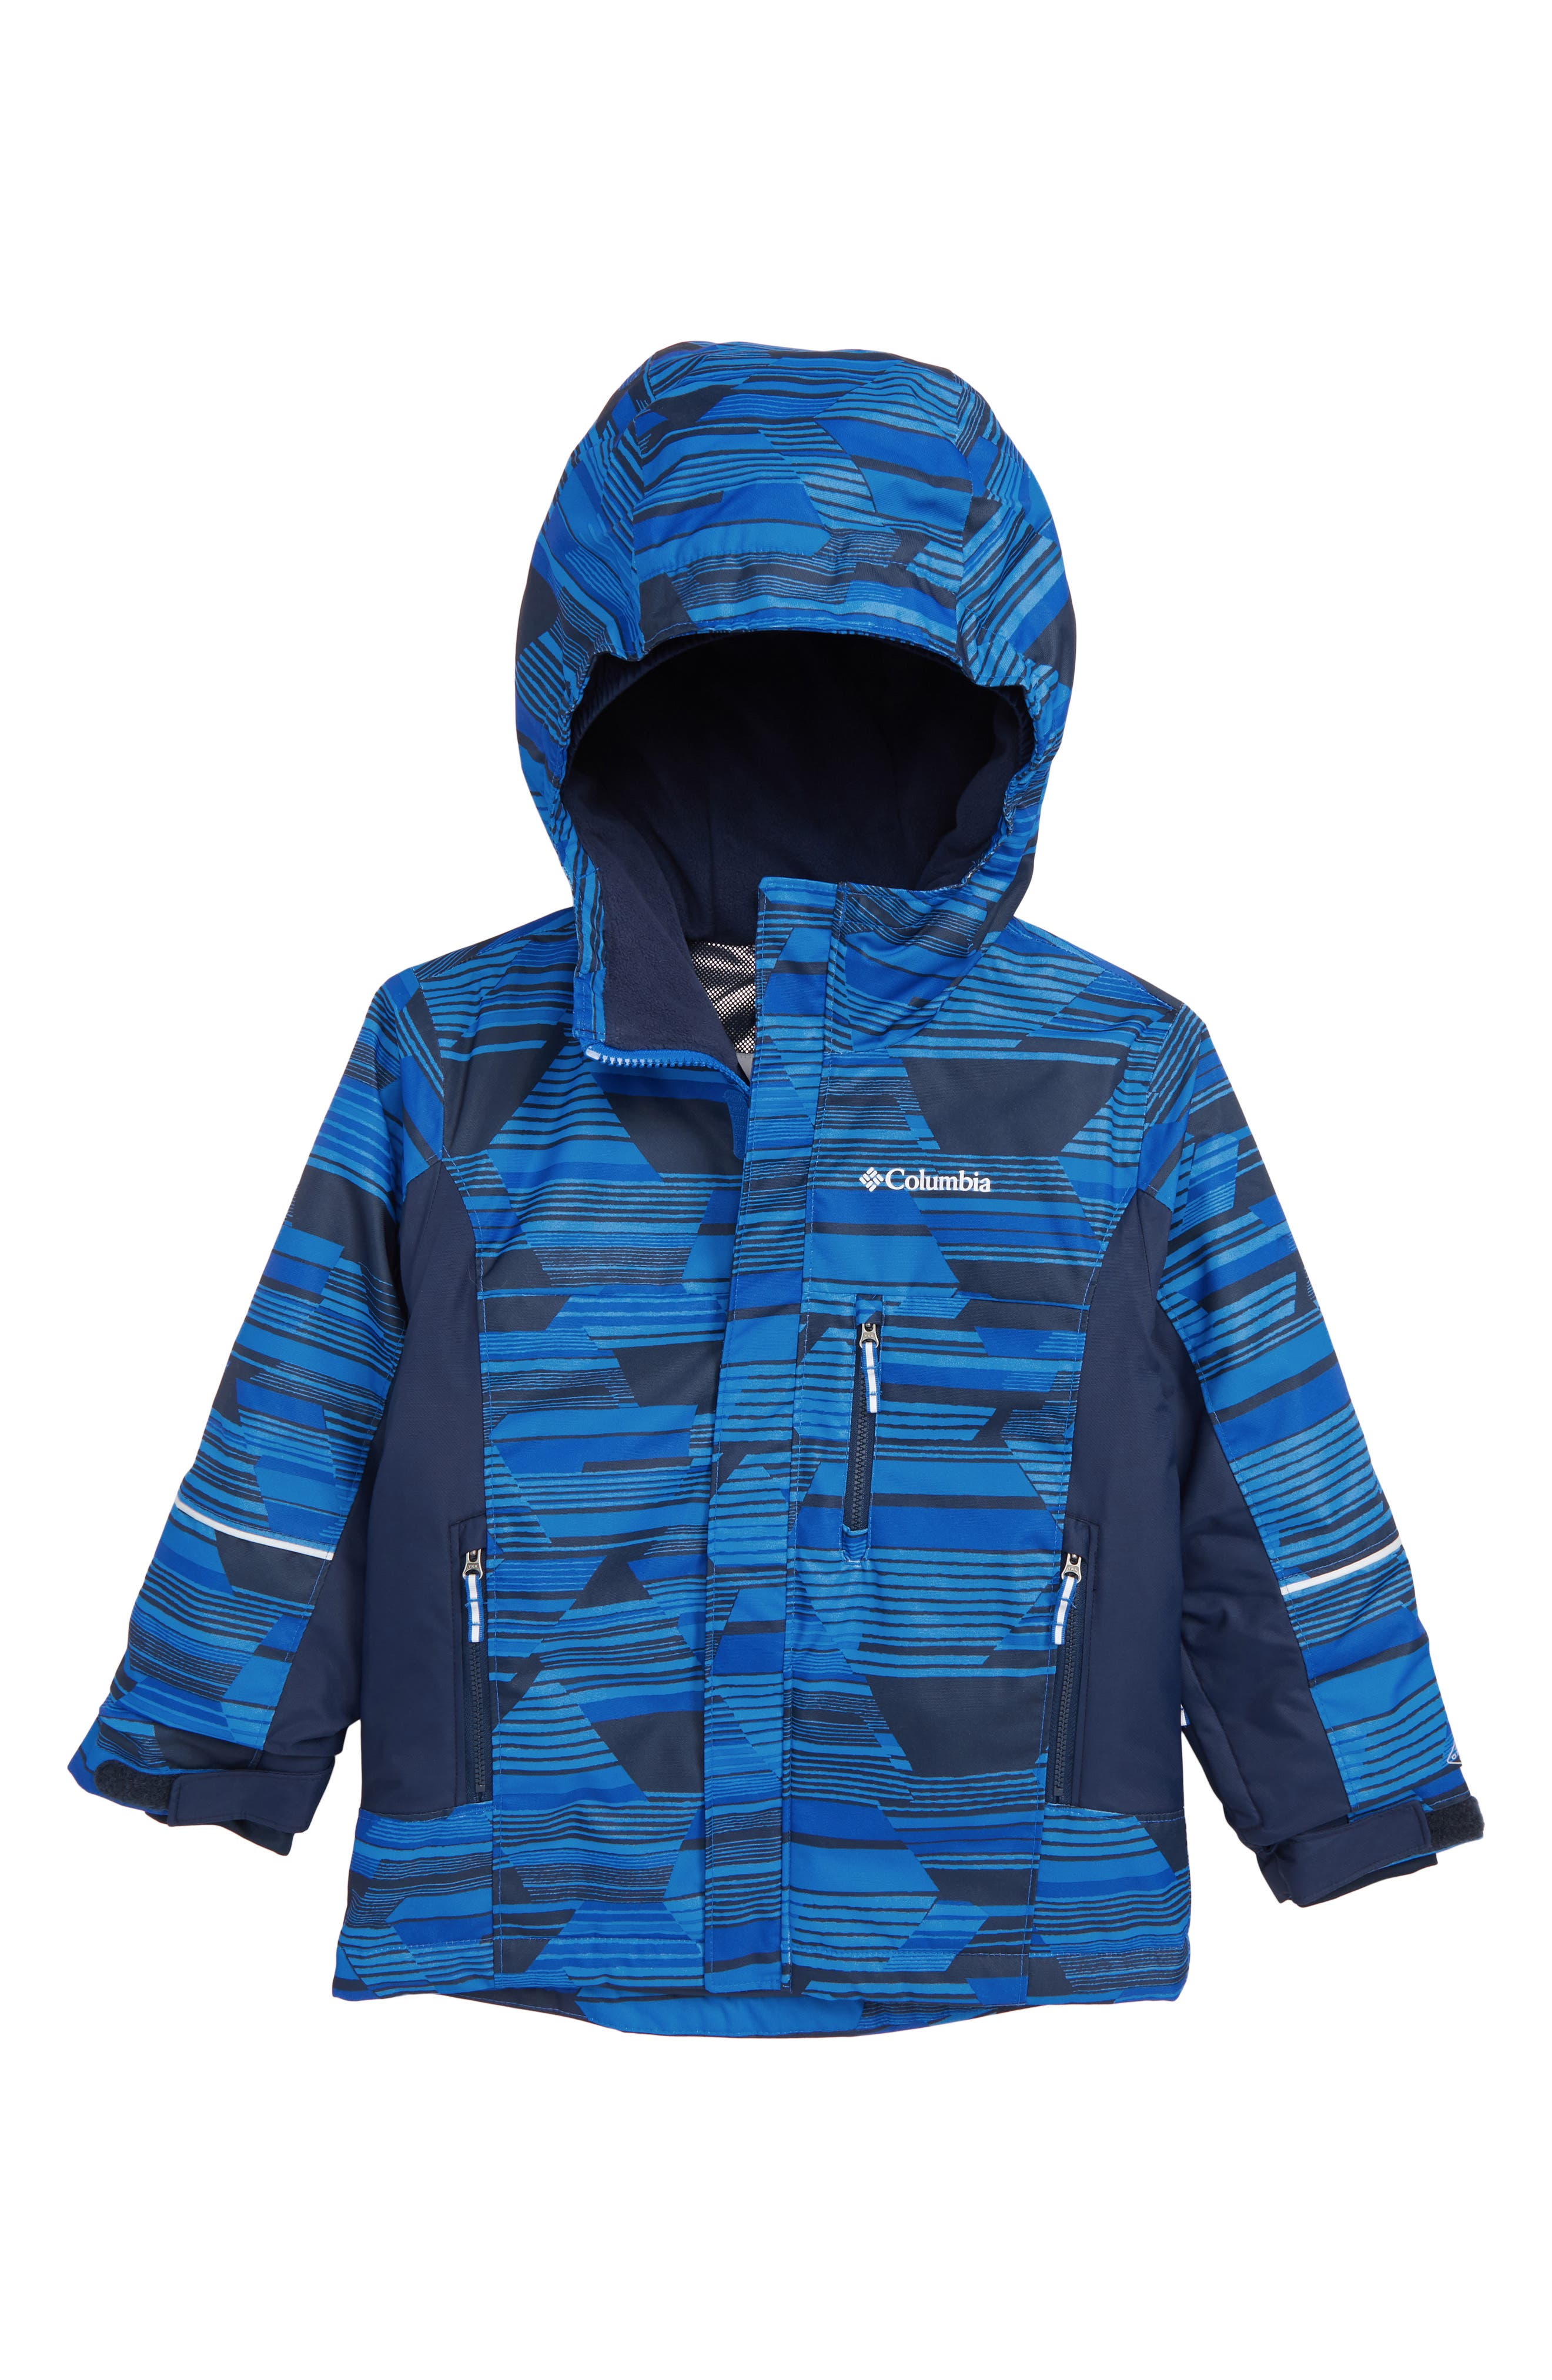 Mighty Mogul<sup>™</sup> Waterproof & Windproof Insulated Jacket,                         Main,                         color, SUPER BLUE GEO PRINT